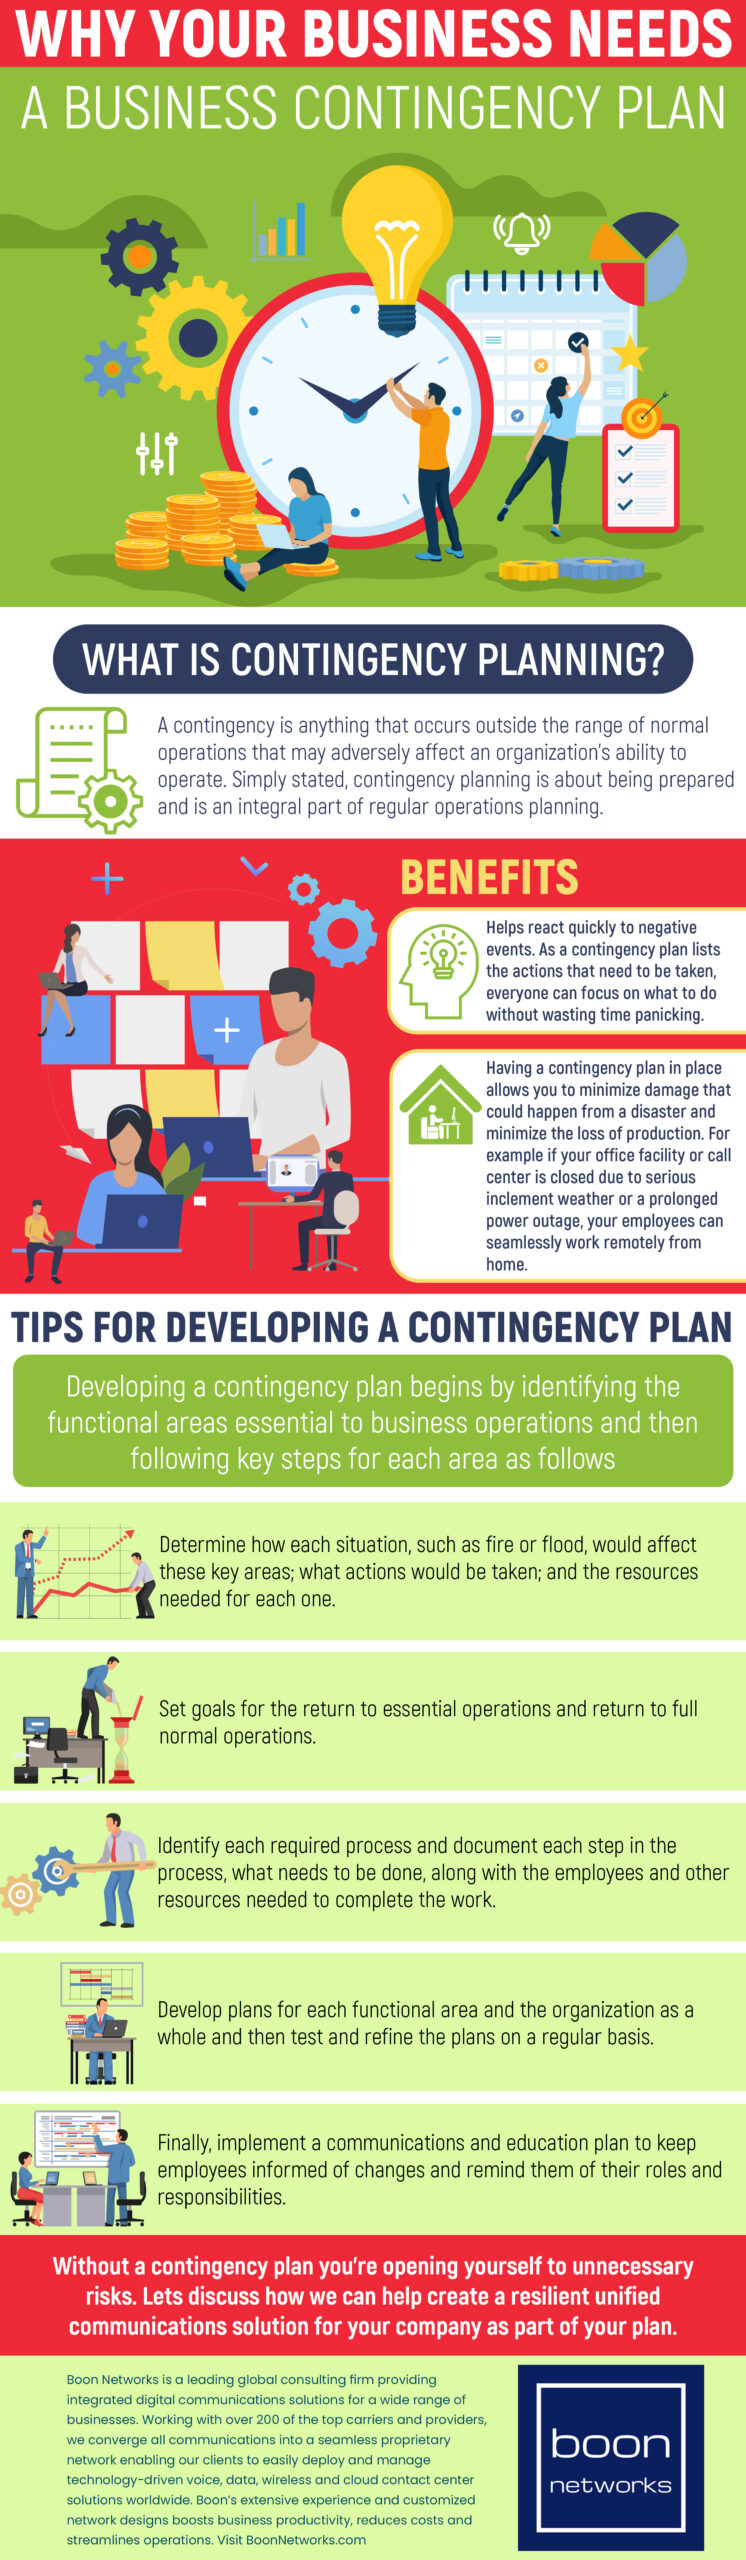 2020 Business Contingency Planning Infographic